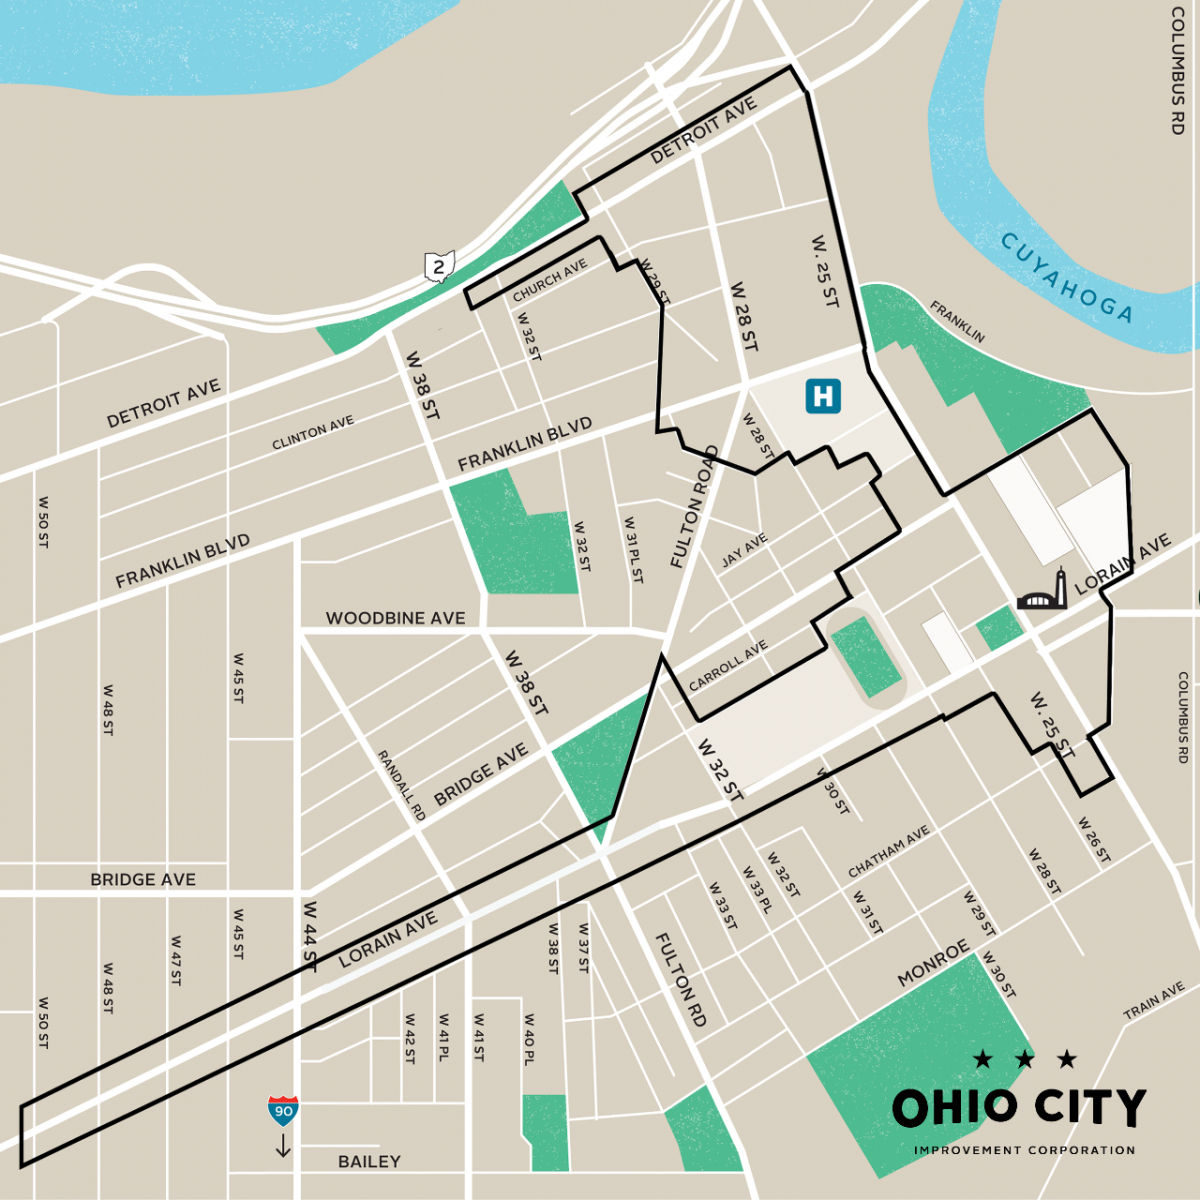 Ohio City Improvement Corporation Boundaries